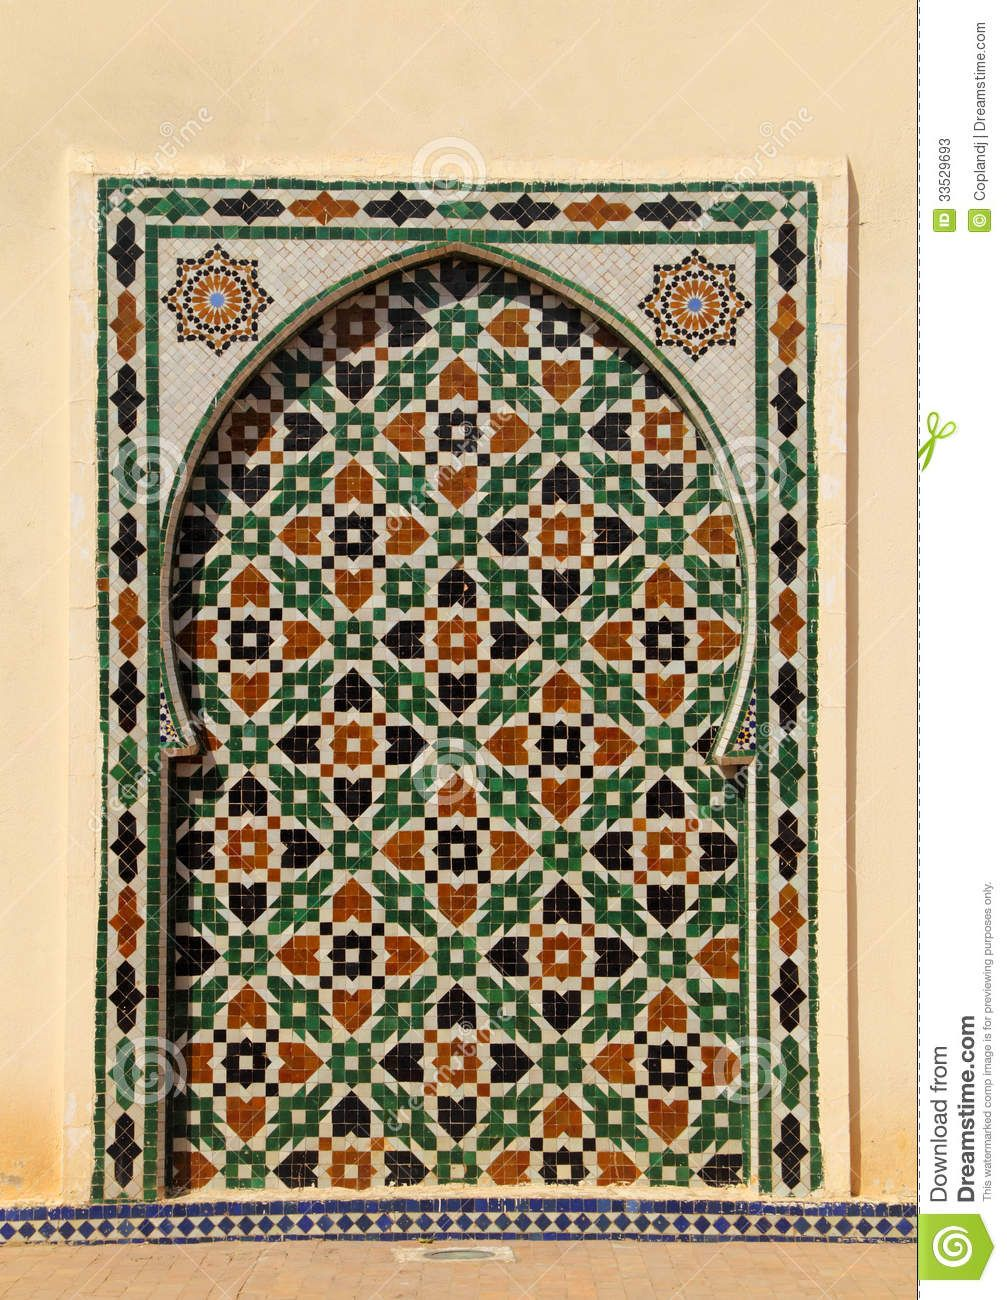 Morocco meknes islamic wall panel arabesque decorated intricate morocco meknes islamic wall panel arabesque decorated intricate ceramic tiles form arch 33529693g 10071300 moroccan architecture pinterest dailygadgetfo Choice Image